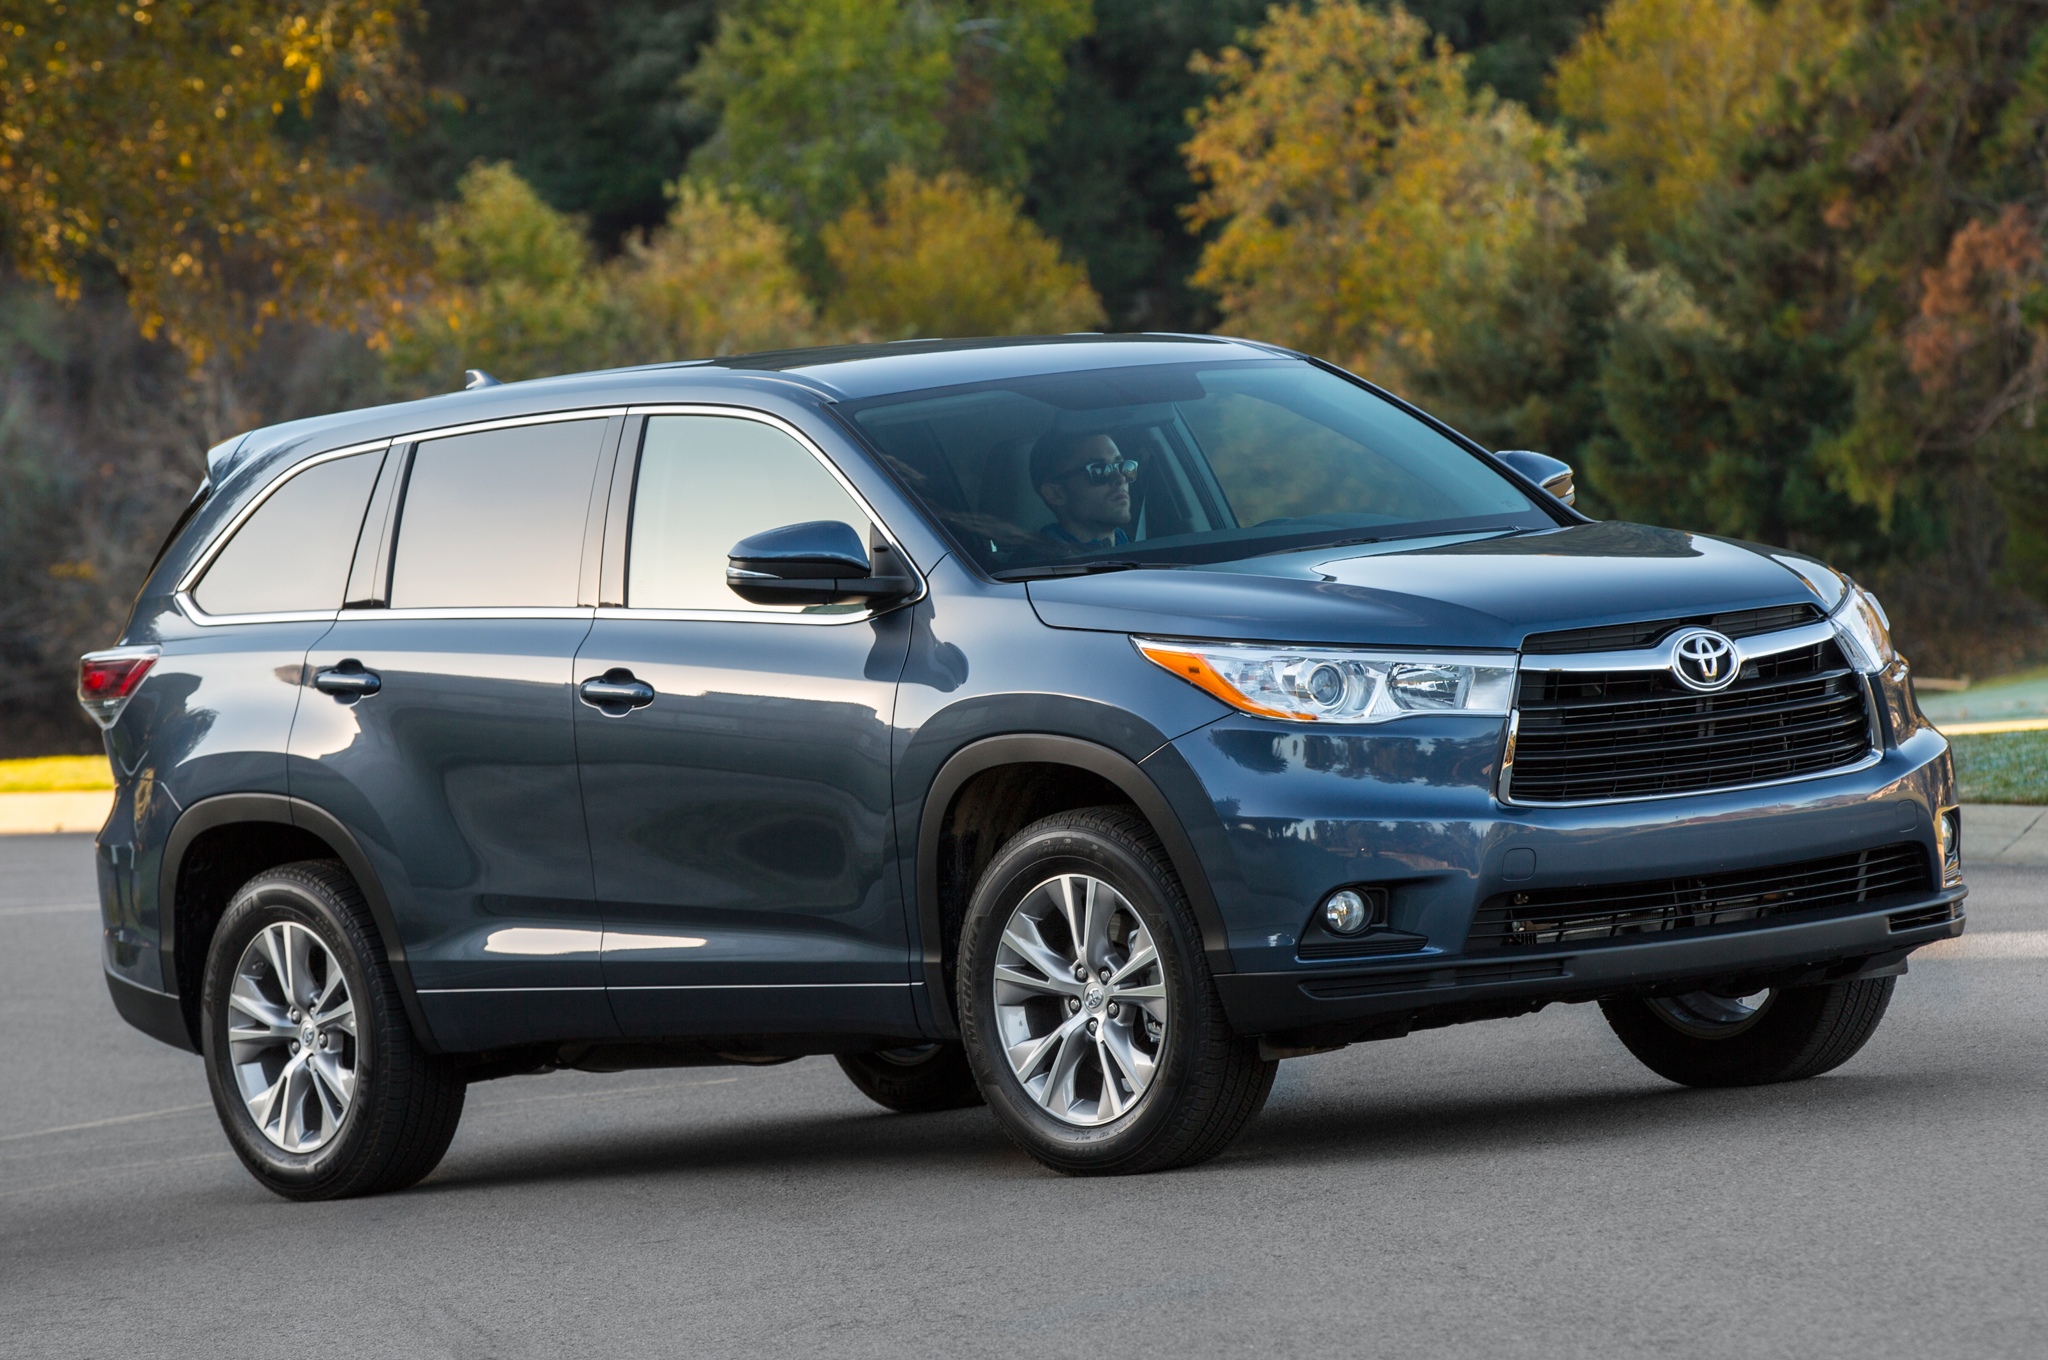 2014 Toyota Highlander LE Plus front view?impolicy\\\\\\\\\\\\\\\\\\\\\\\\\\\\\\\=entryimage 2016 toyota corolla fuse box location electrical wiring diagram